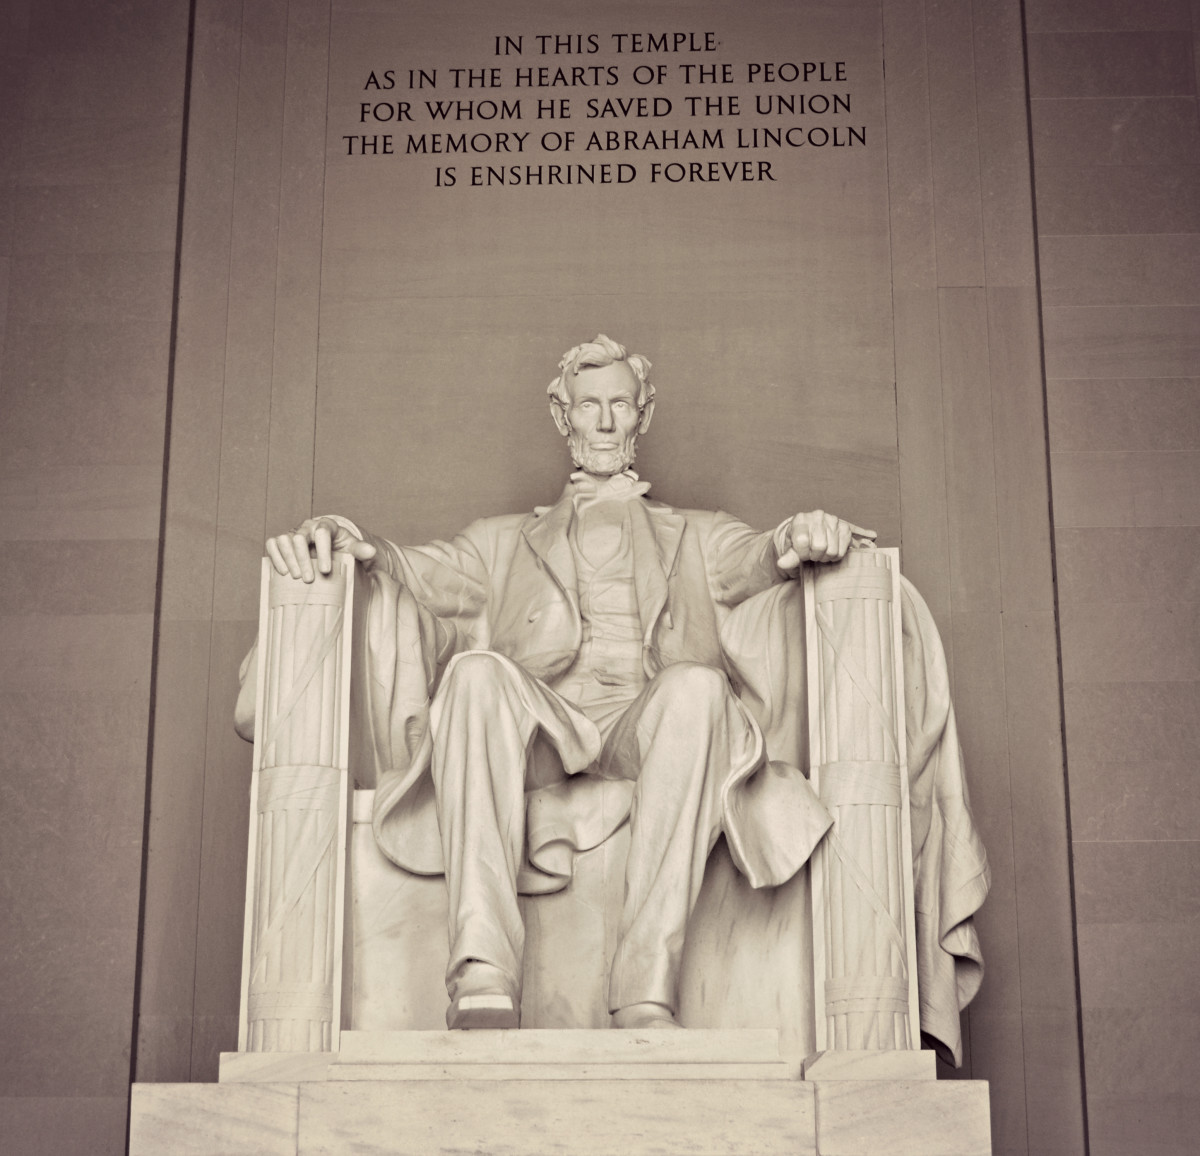 The Lincoln Memorial is quite large and impressive.